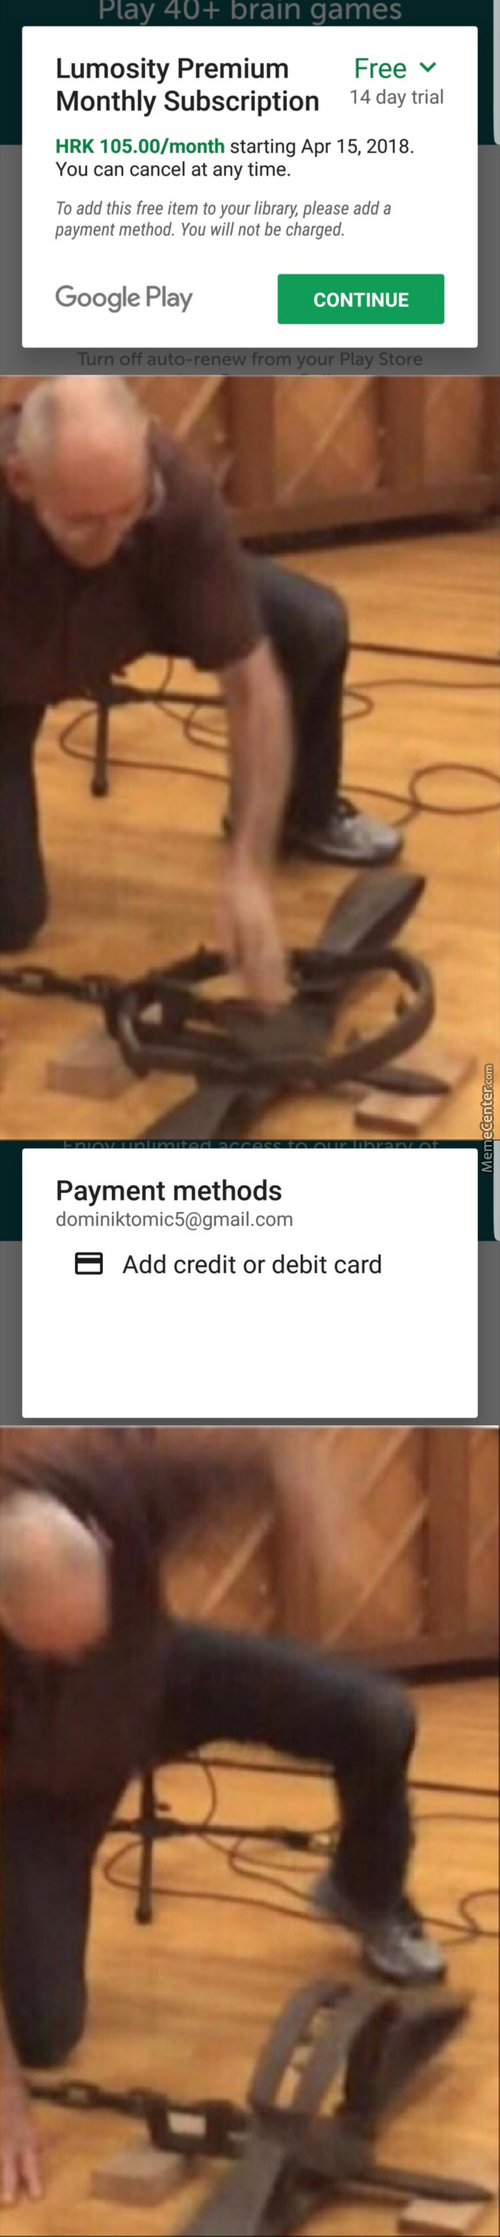 What's The Point Of Free Trial If You Need A Credit Card?